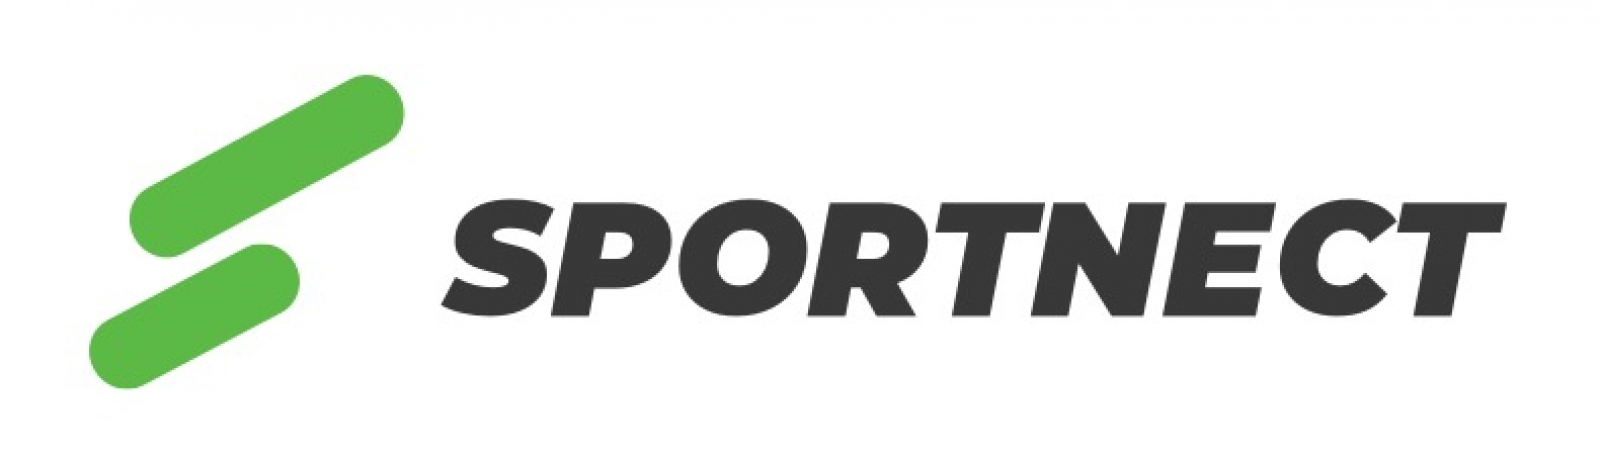 Sportconnect